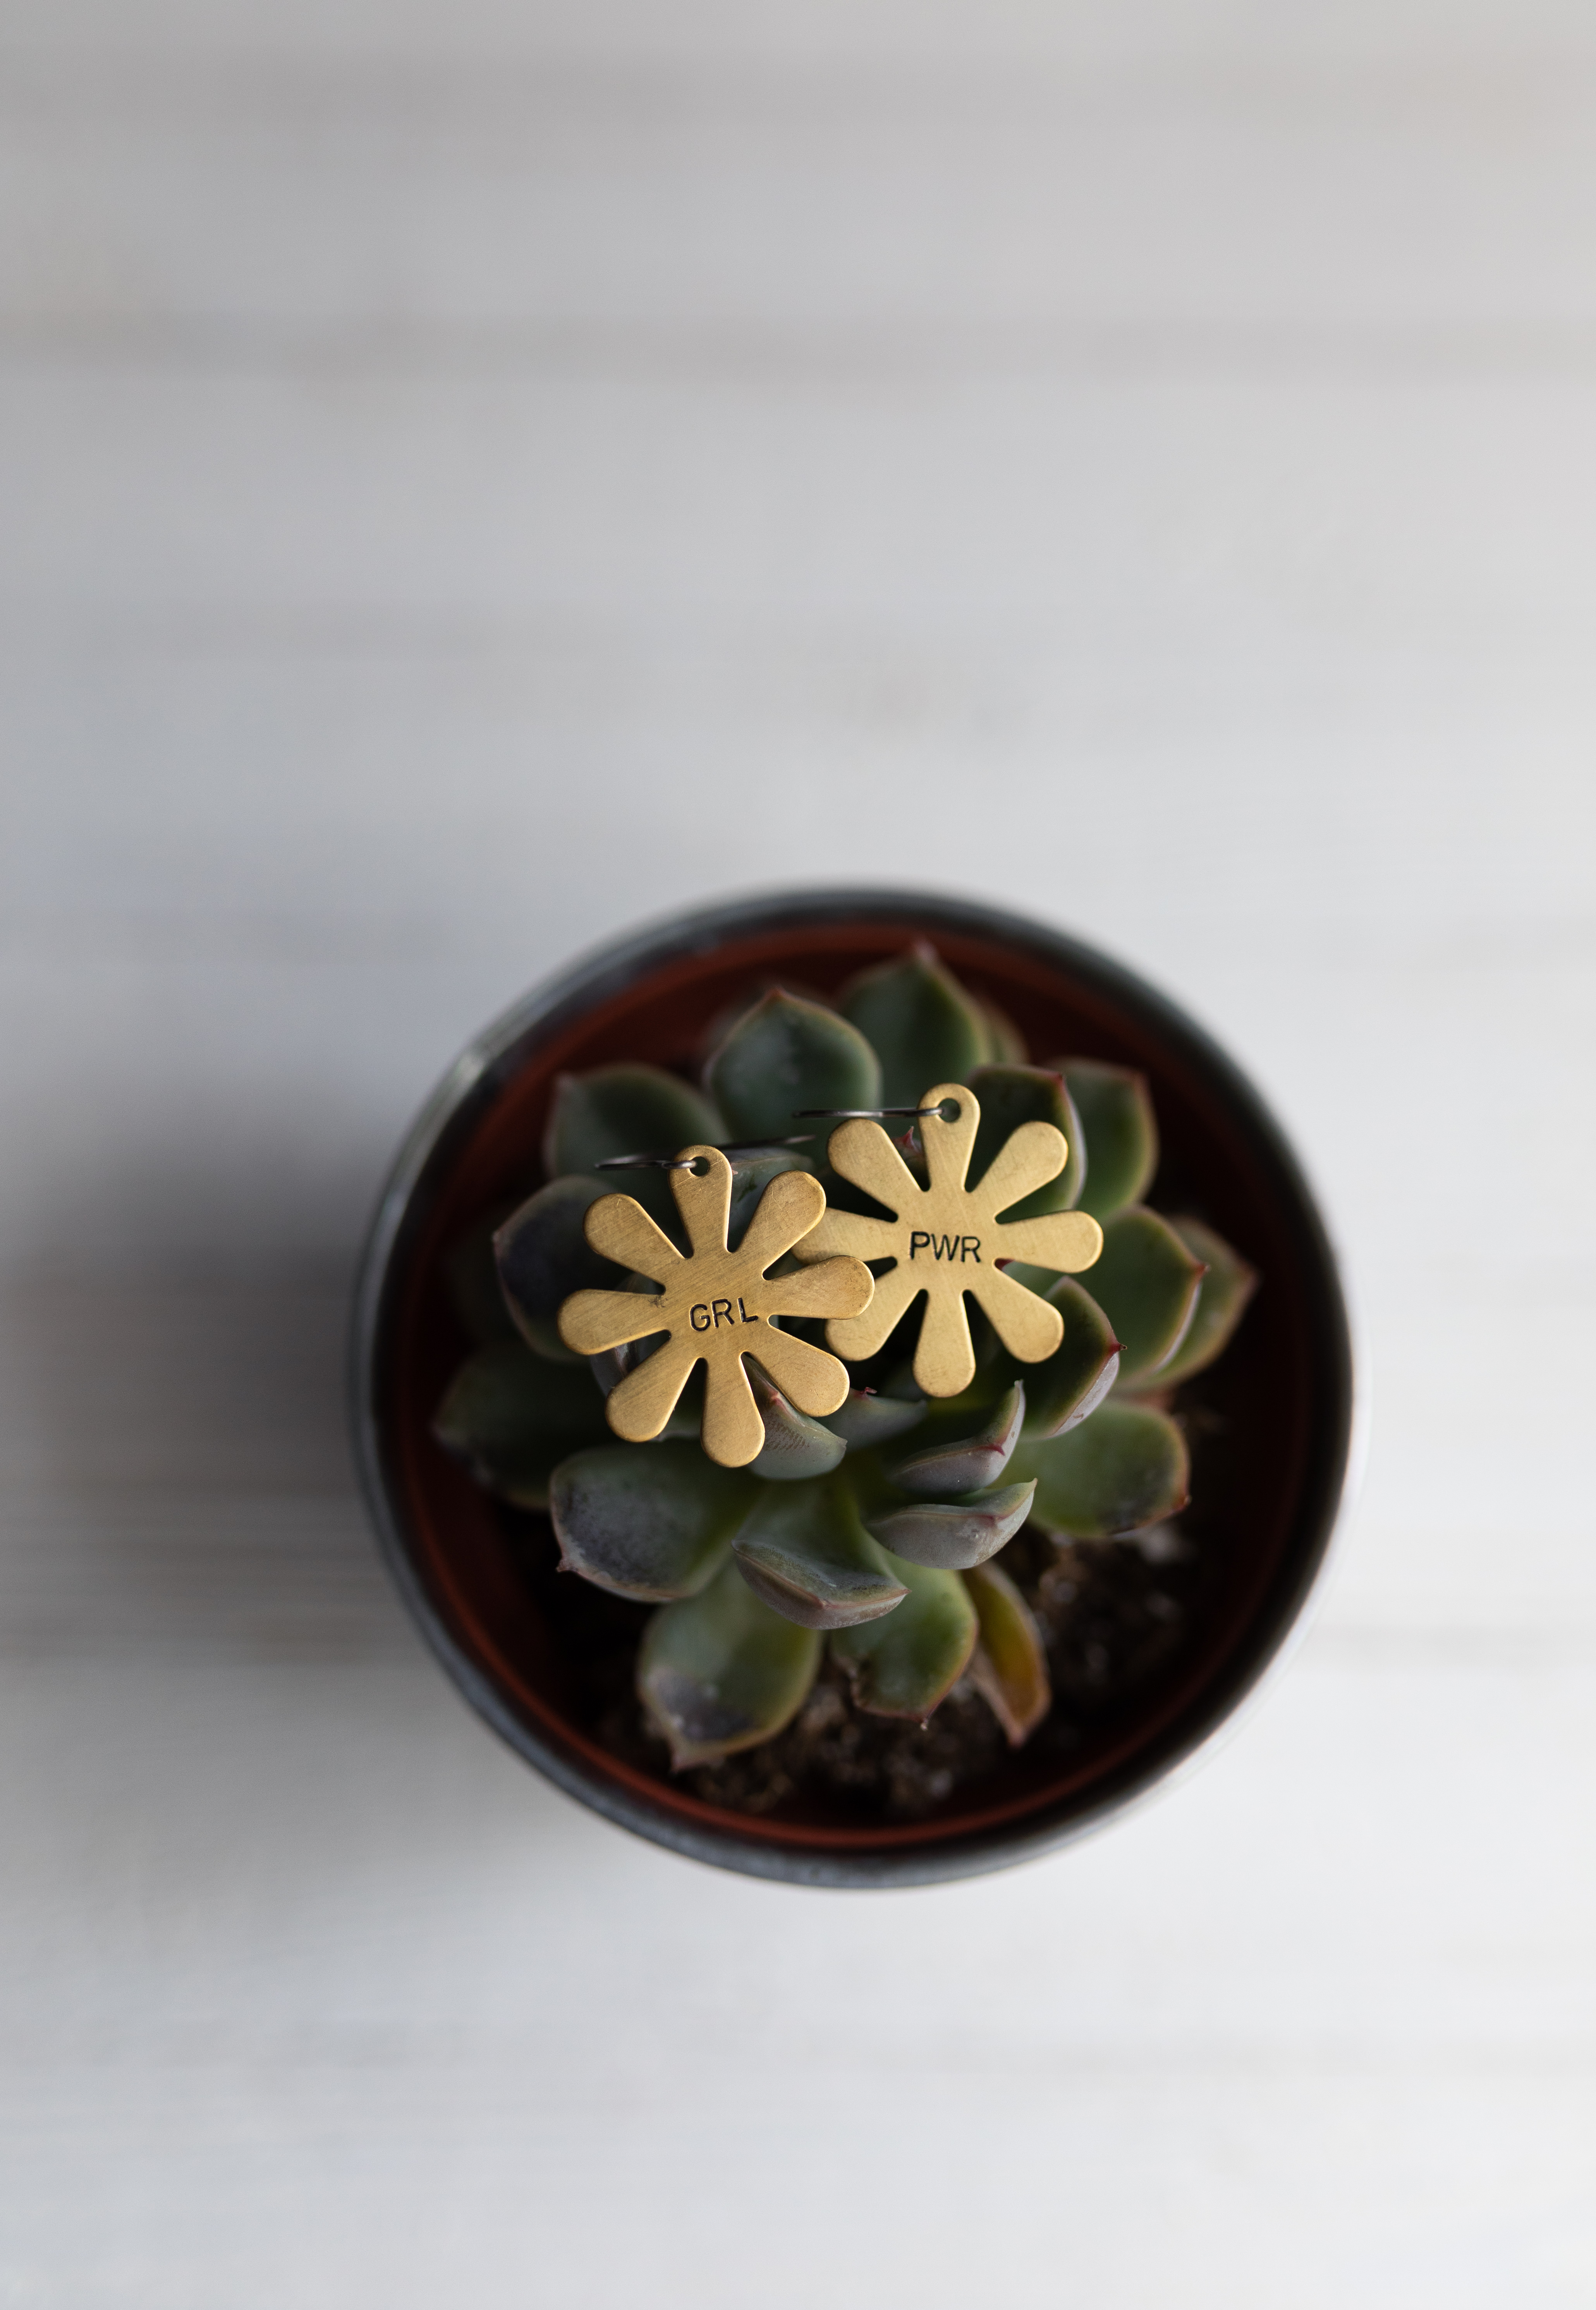 gold flower earrings presented on a succulent. Product photography matters by Elizabeth A. Images